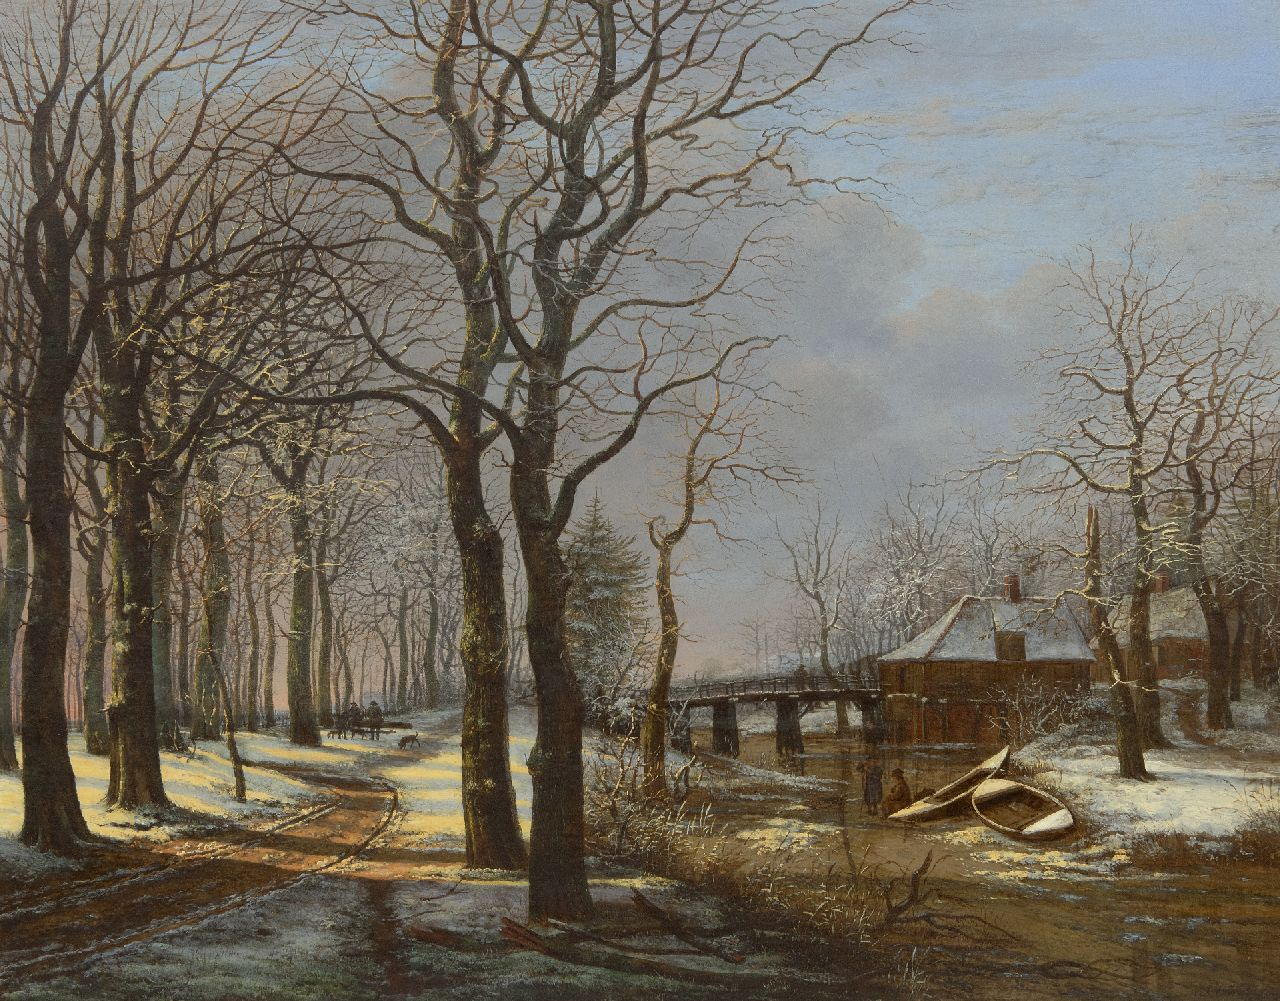 George Pieter Westenberg | Woodlandscape with treelane in the snow, oil on canvas, 63.8 x 80.8 cm, signed l.r. and dated 1821